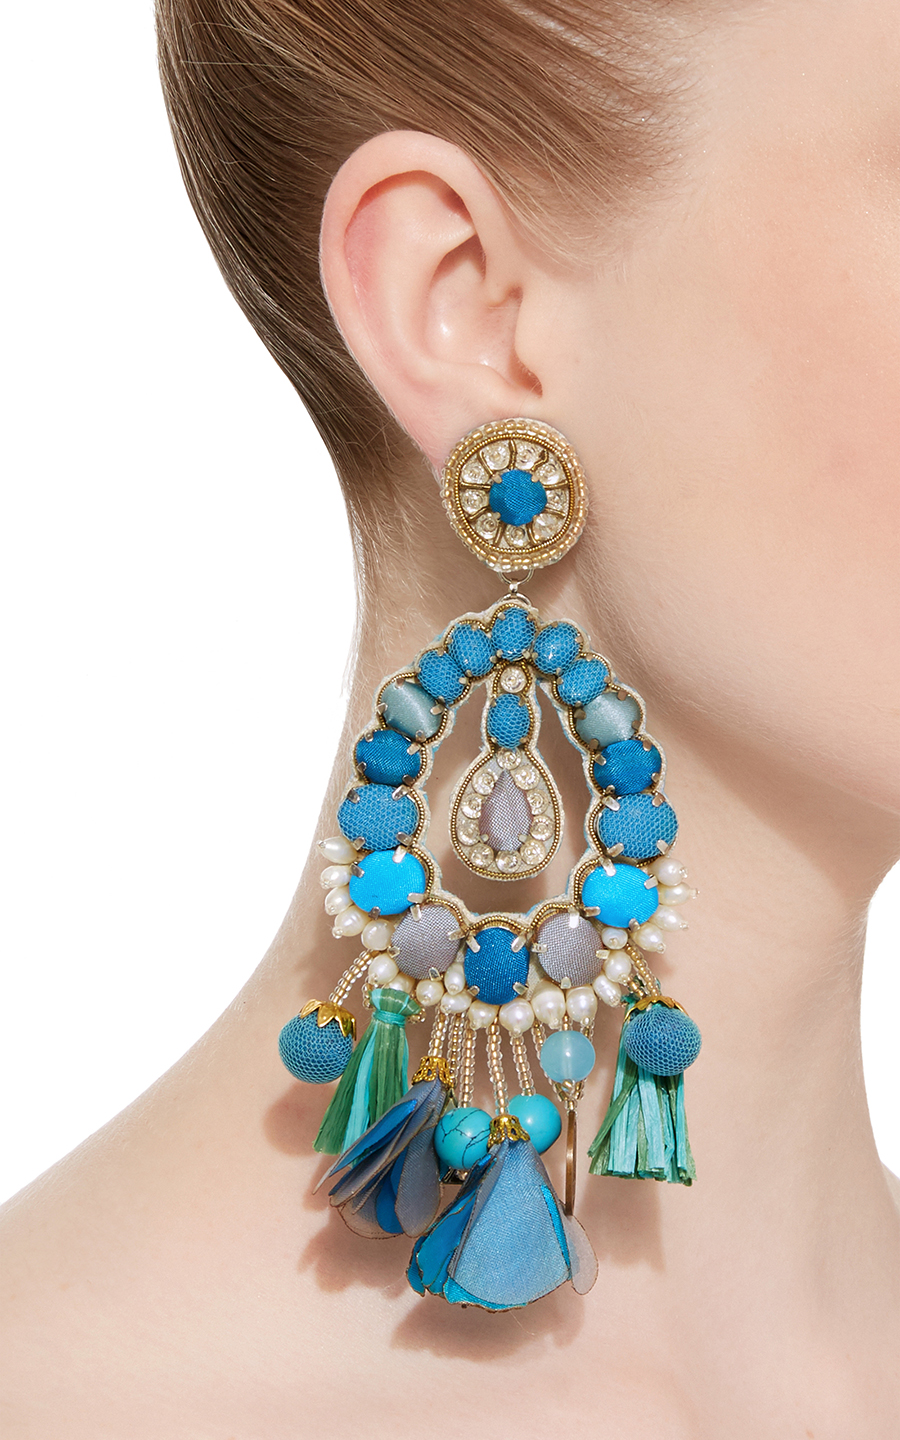 Blue Tear Drop Earrings with Tassels Ranjana Khan stylish clipon earrings